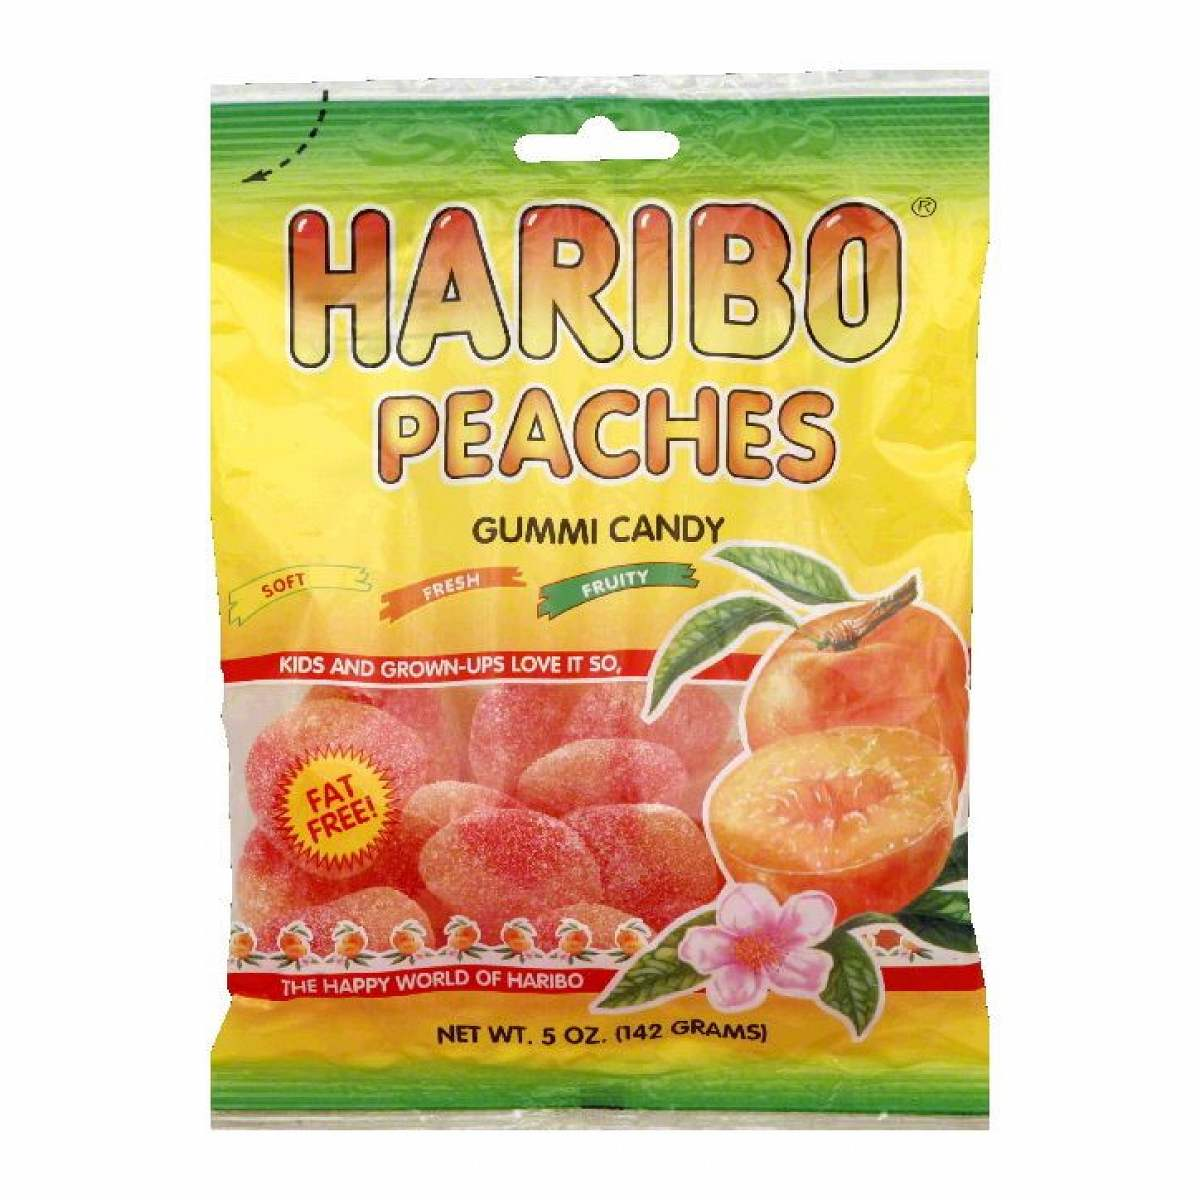 Haribo Peaches 5oz./142 grams (12 pack)